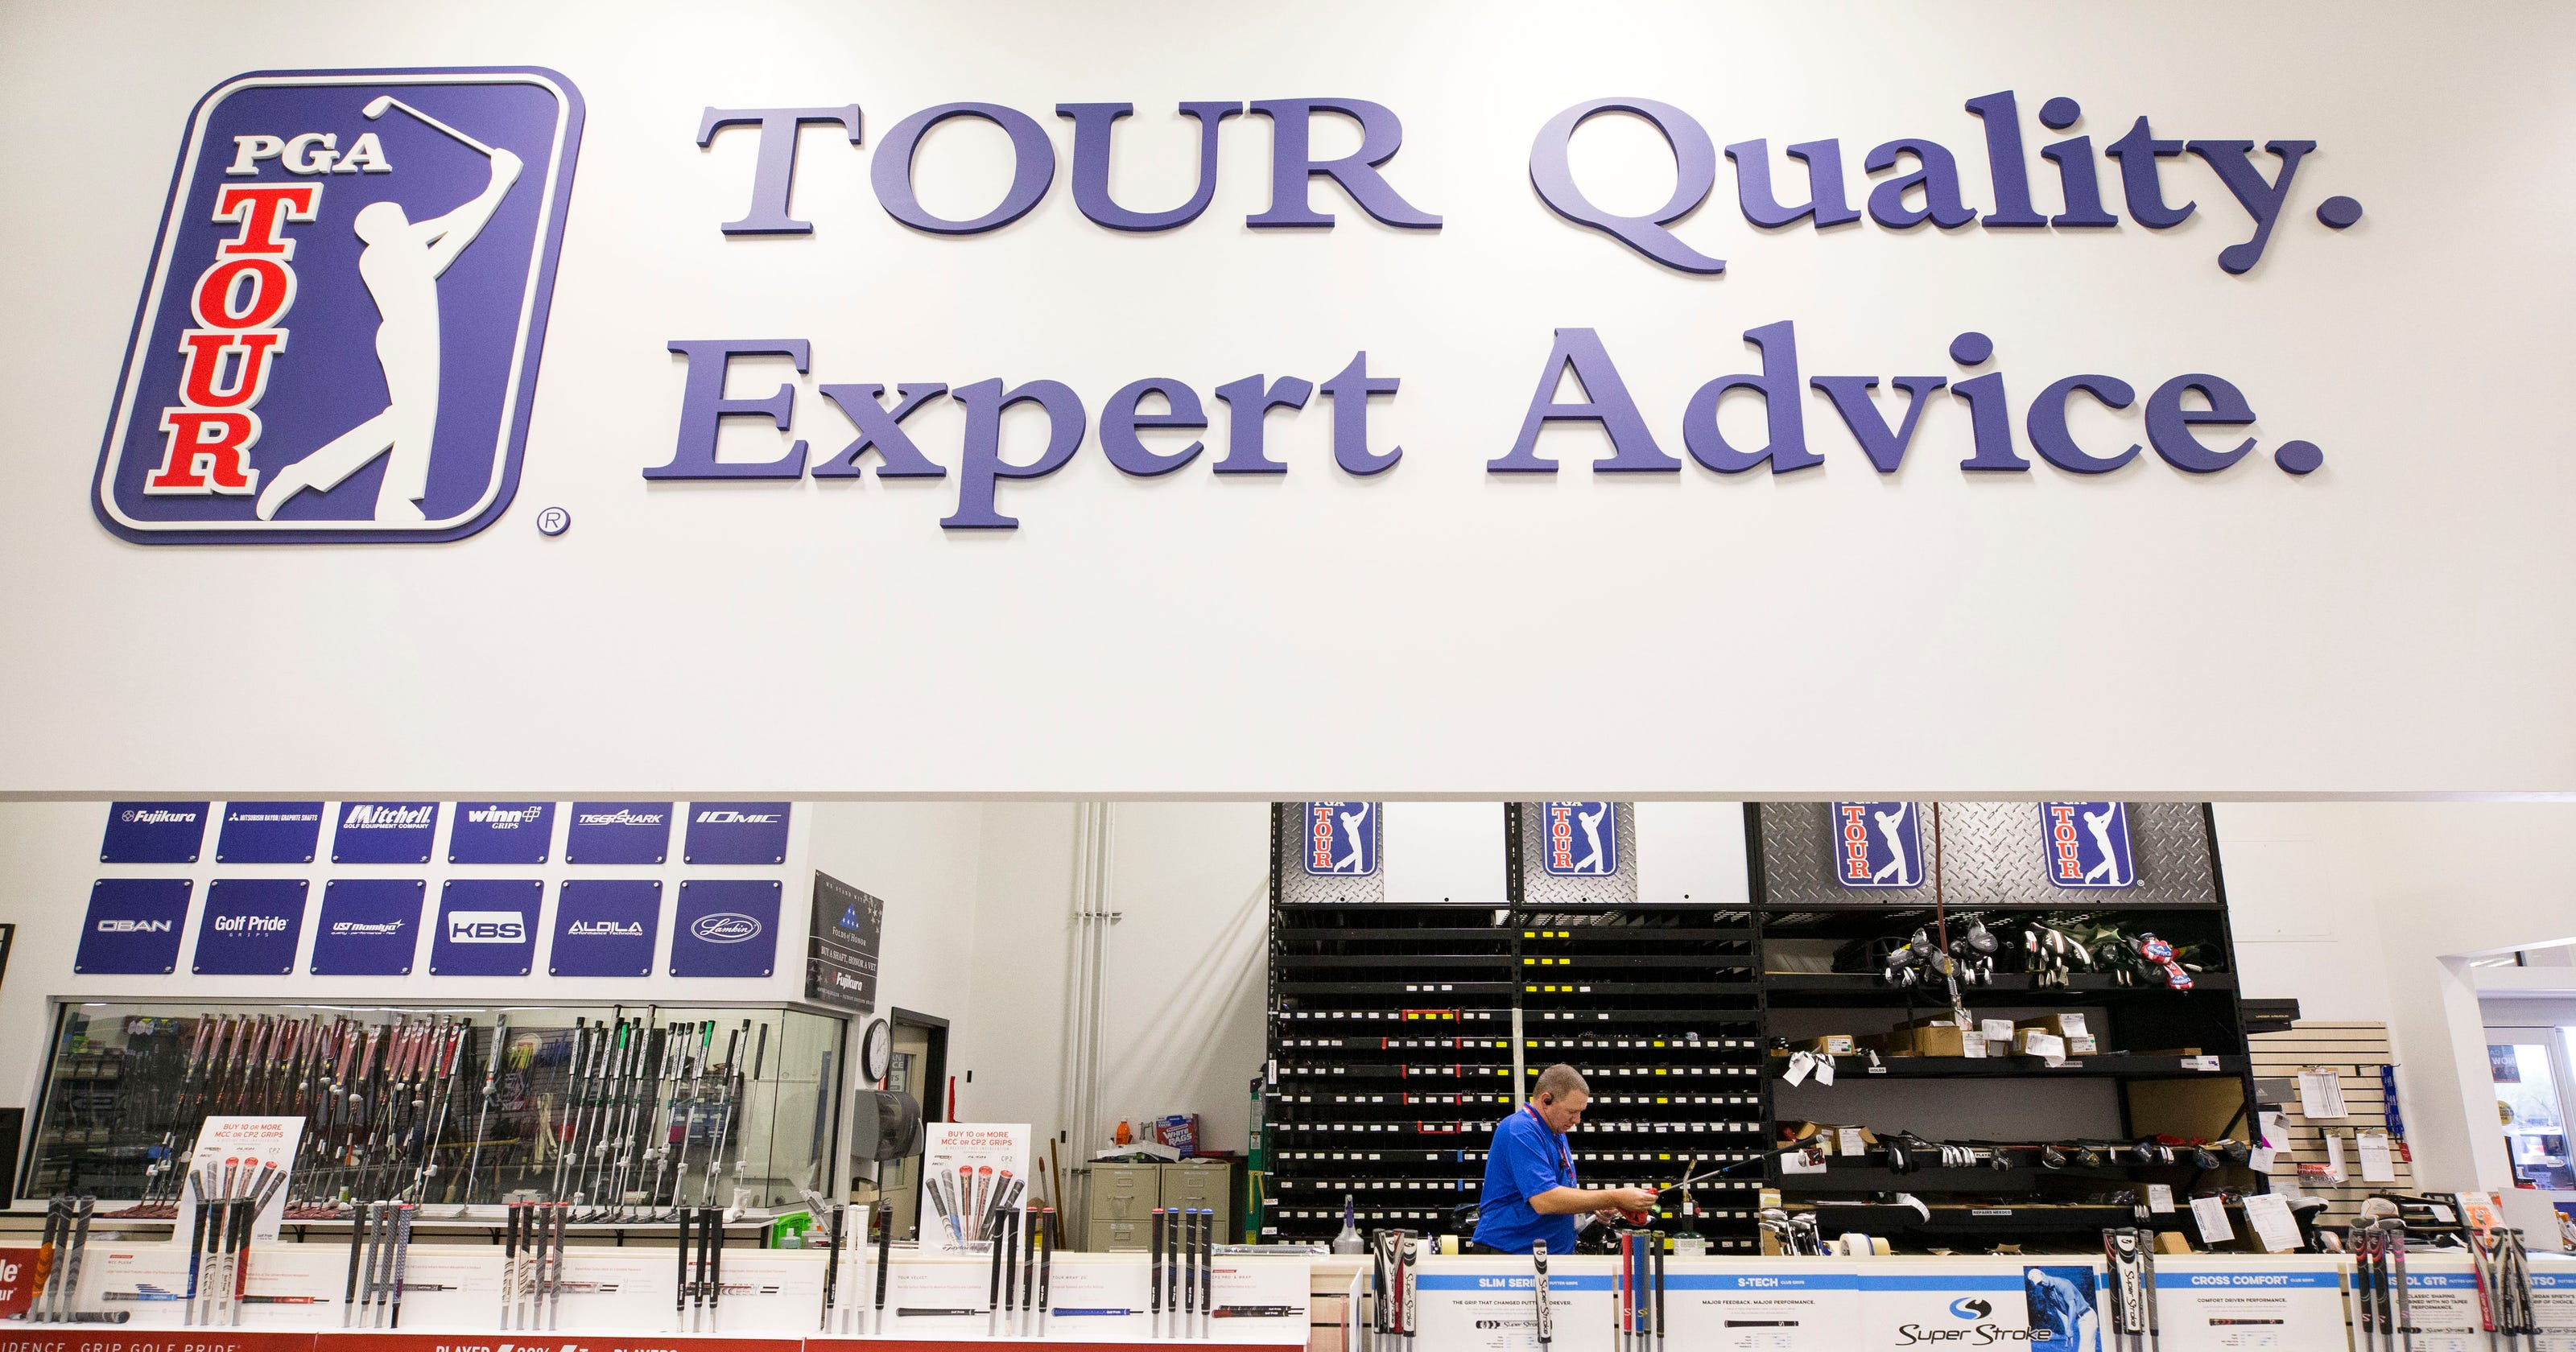 PGA Tour Superstore expanding as other retailers collapse